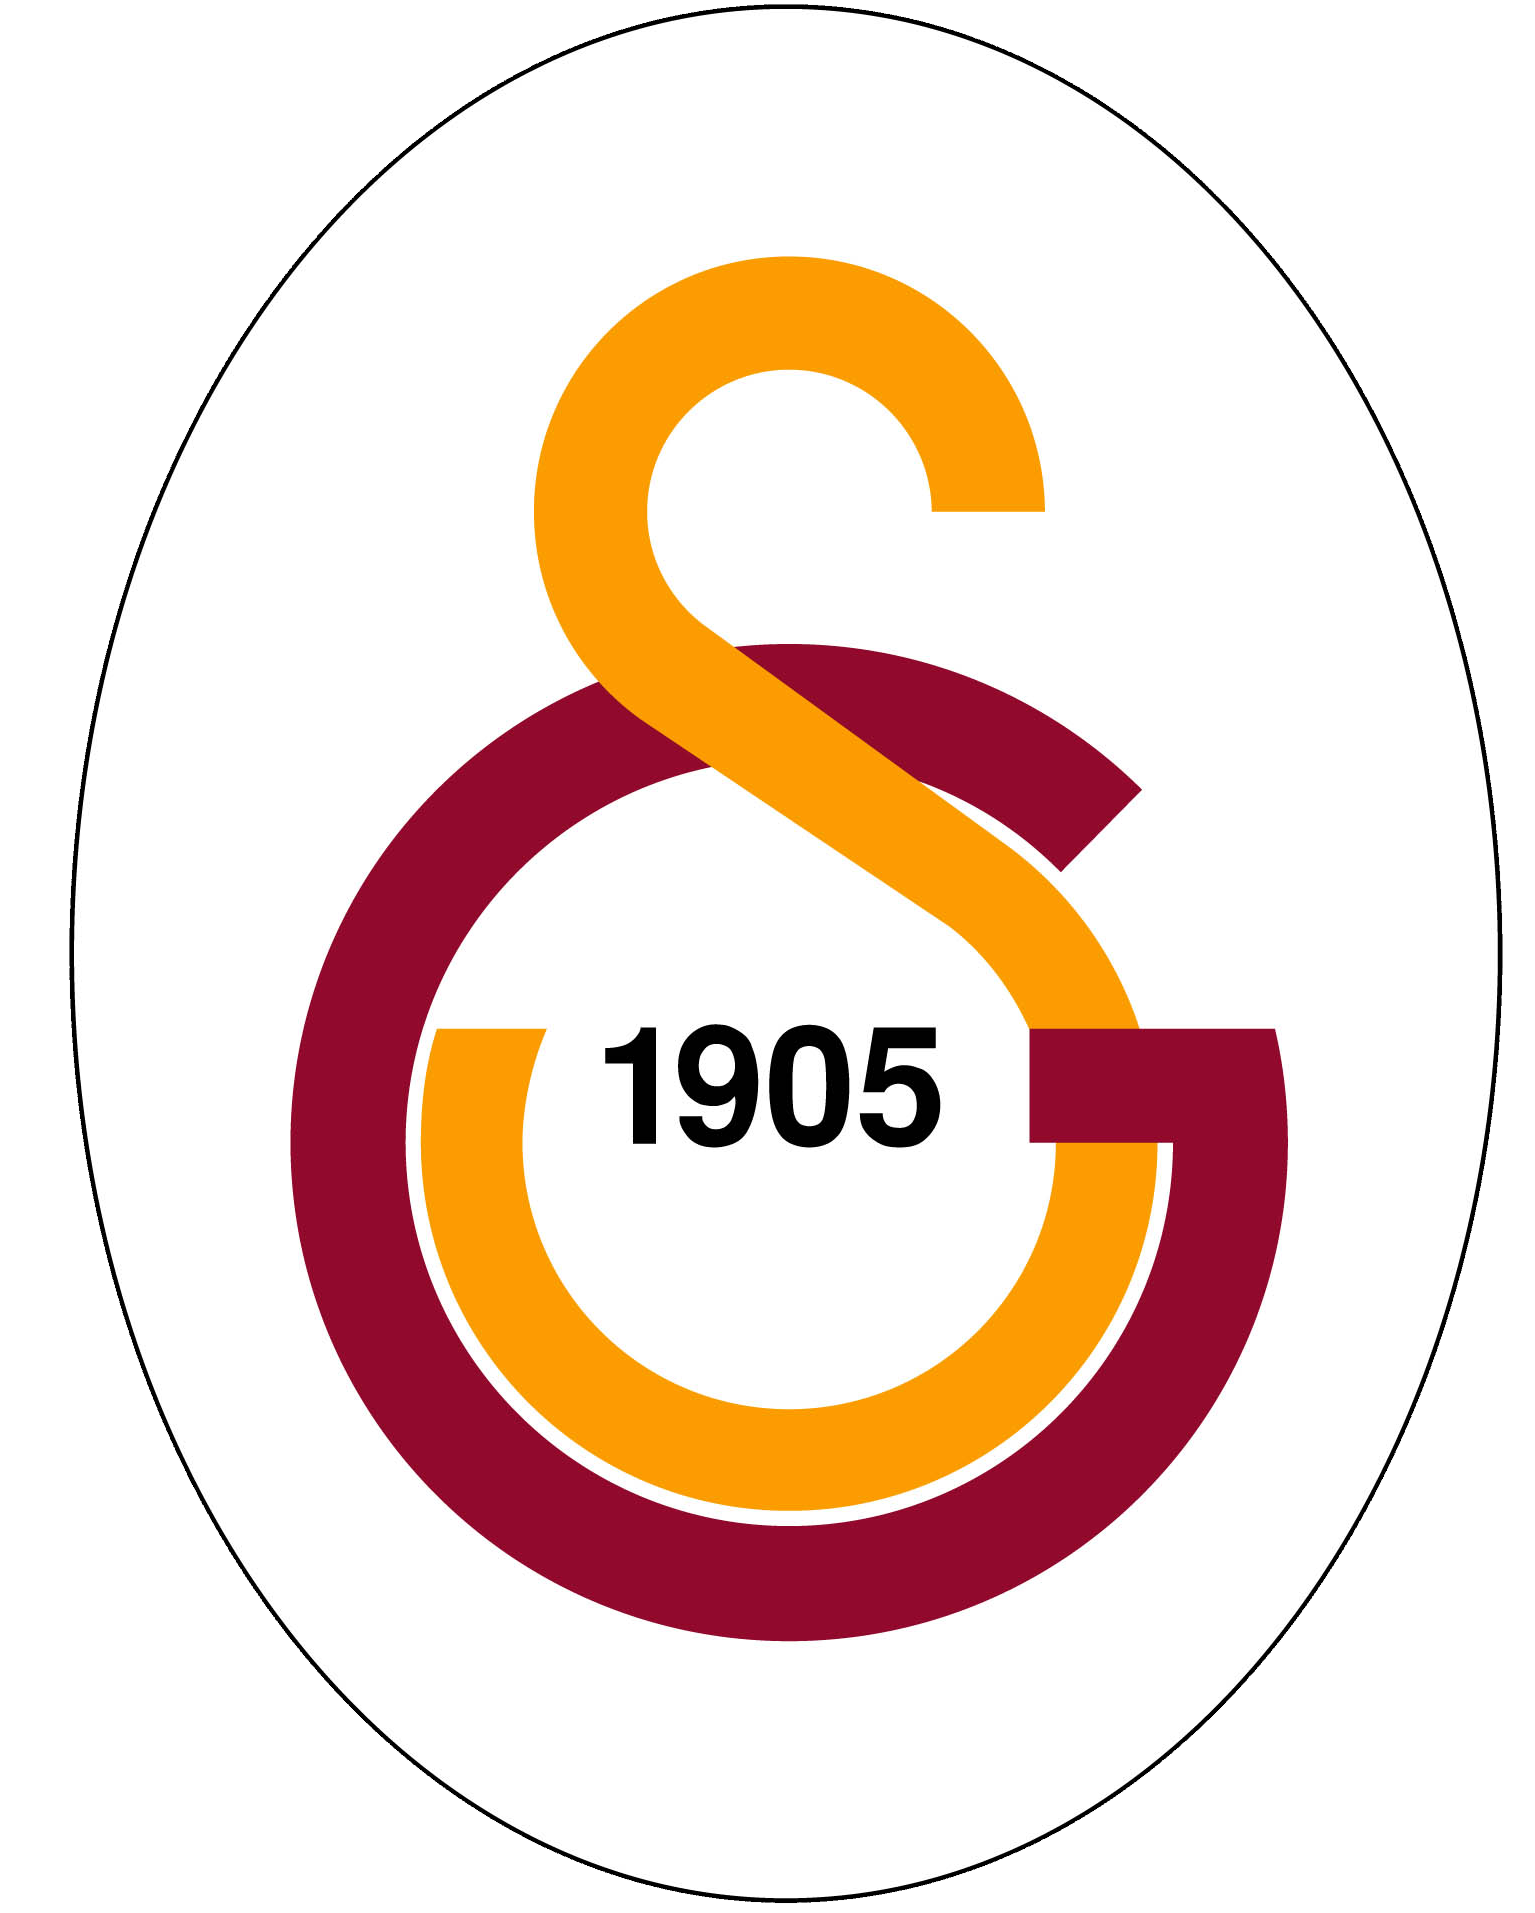 Turkey football federation crest 256 x 256 png image. File galatasaray sports club